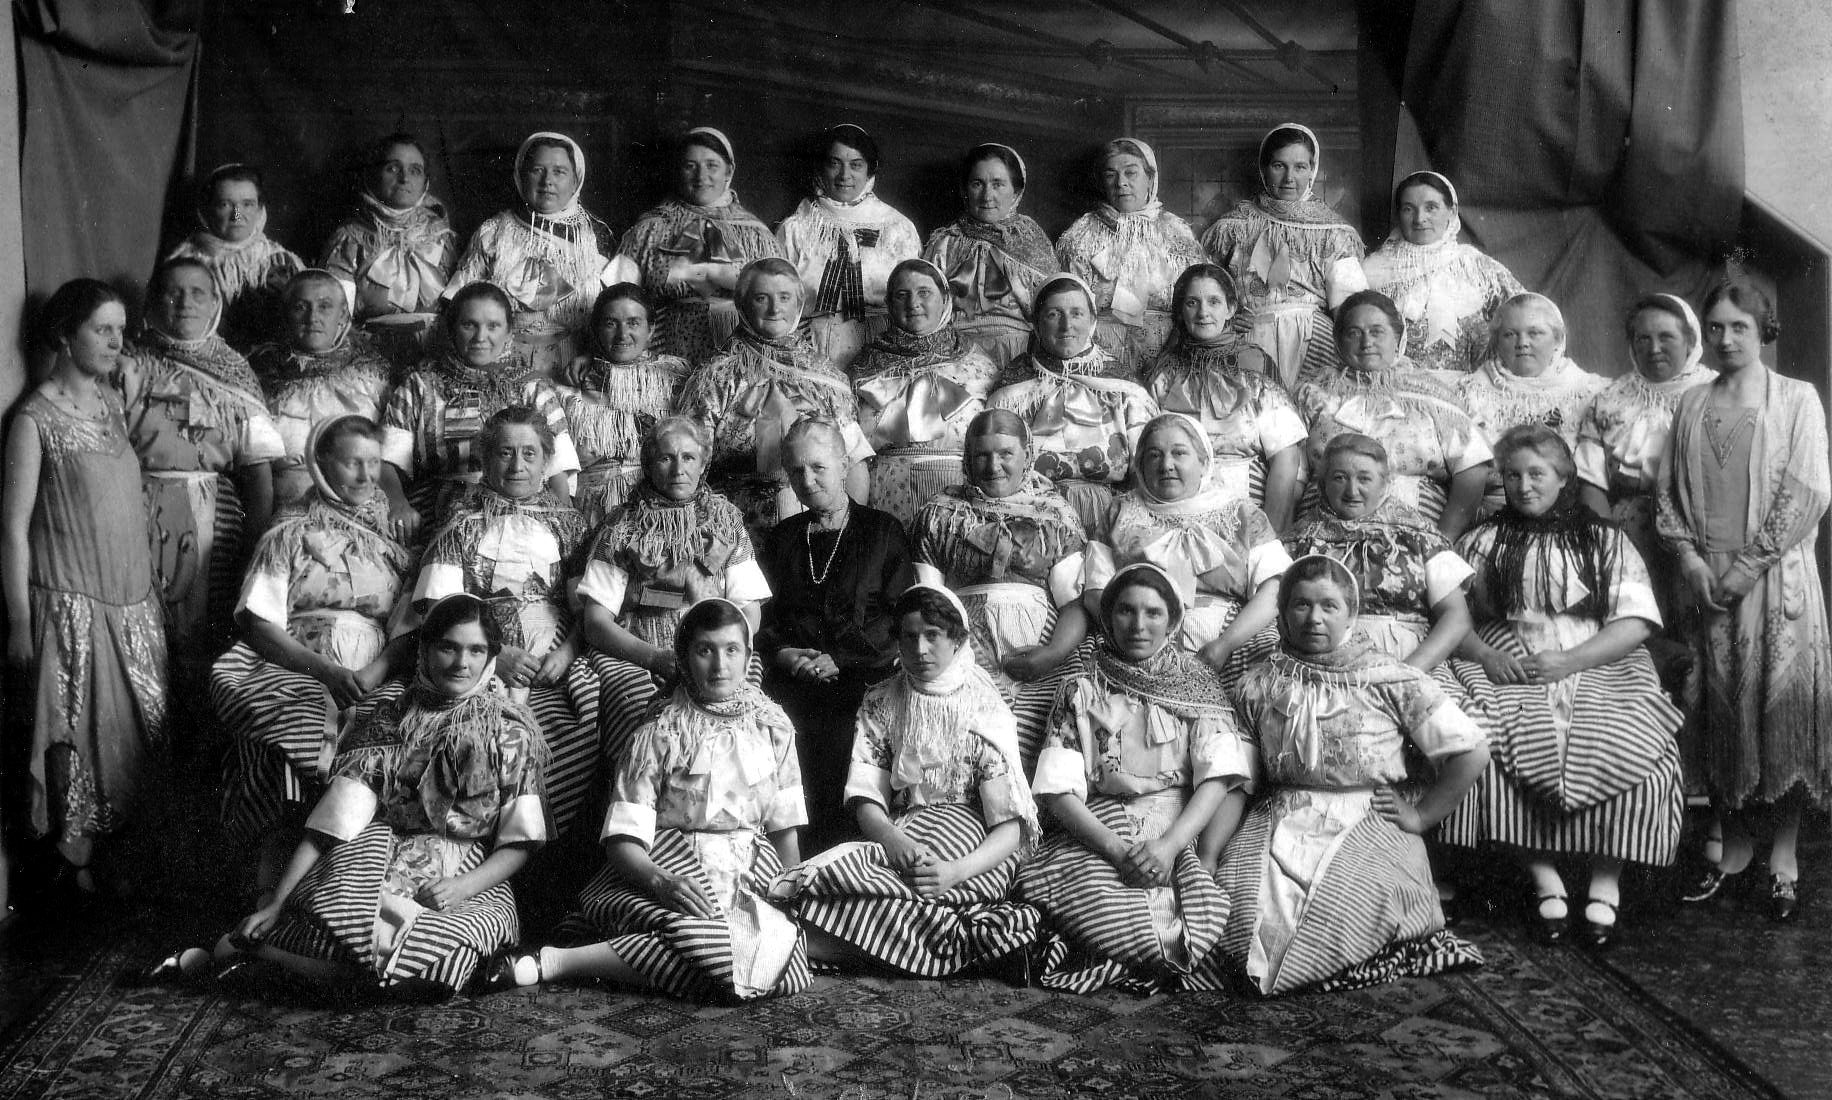 Newhaven Fishwives Choir 1920s